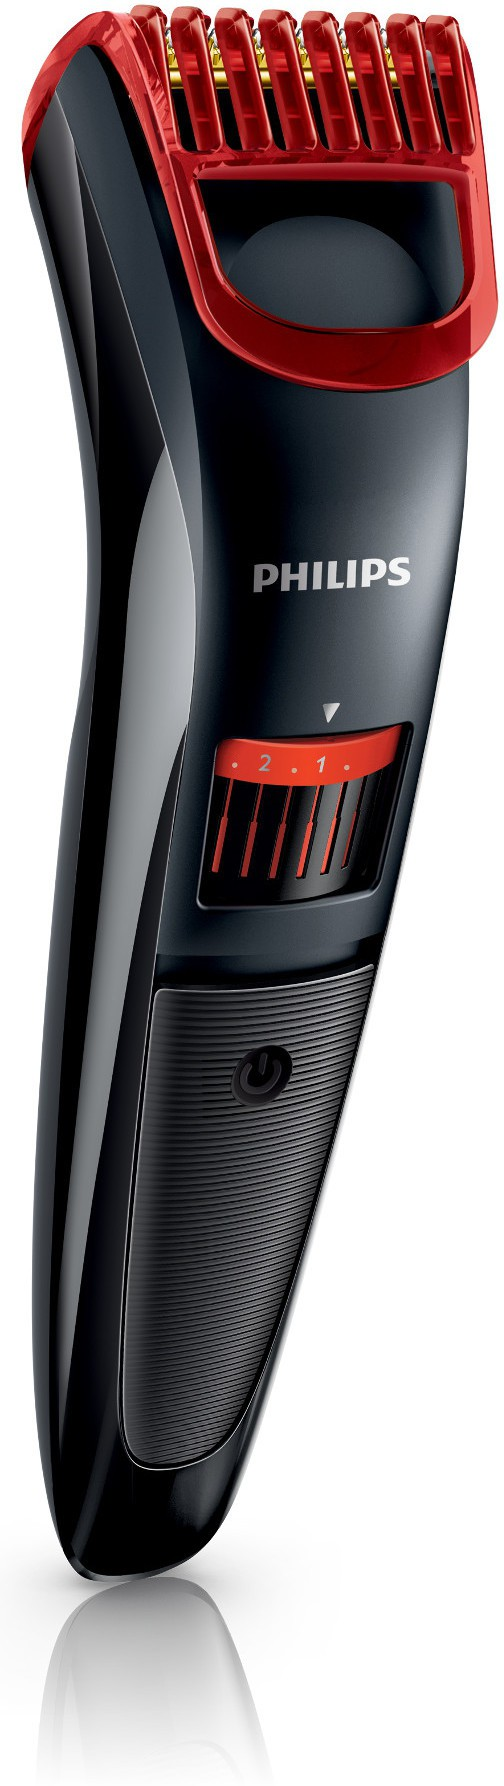 philips pro skin advanced qt4011 15 trimmer for men price in india 29 jan 2018 philips pro. Black Bedroom Furniture Sets. Home Design Ideas